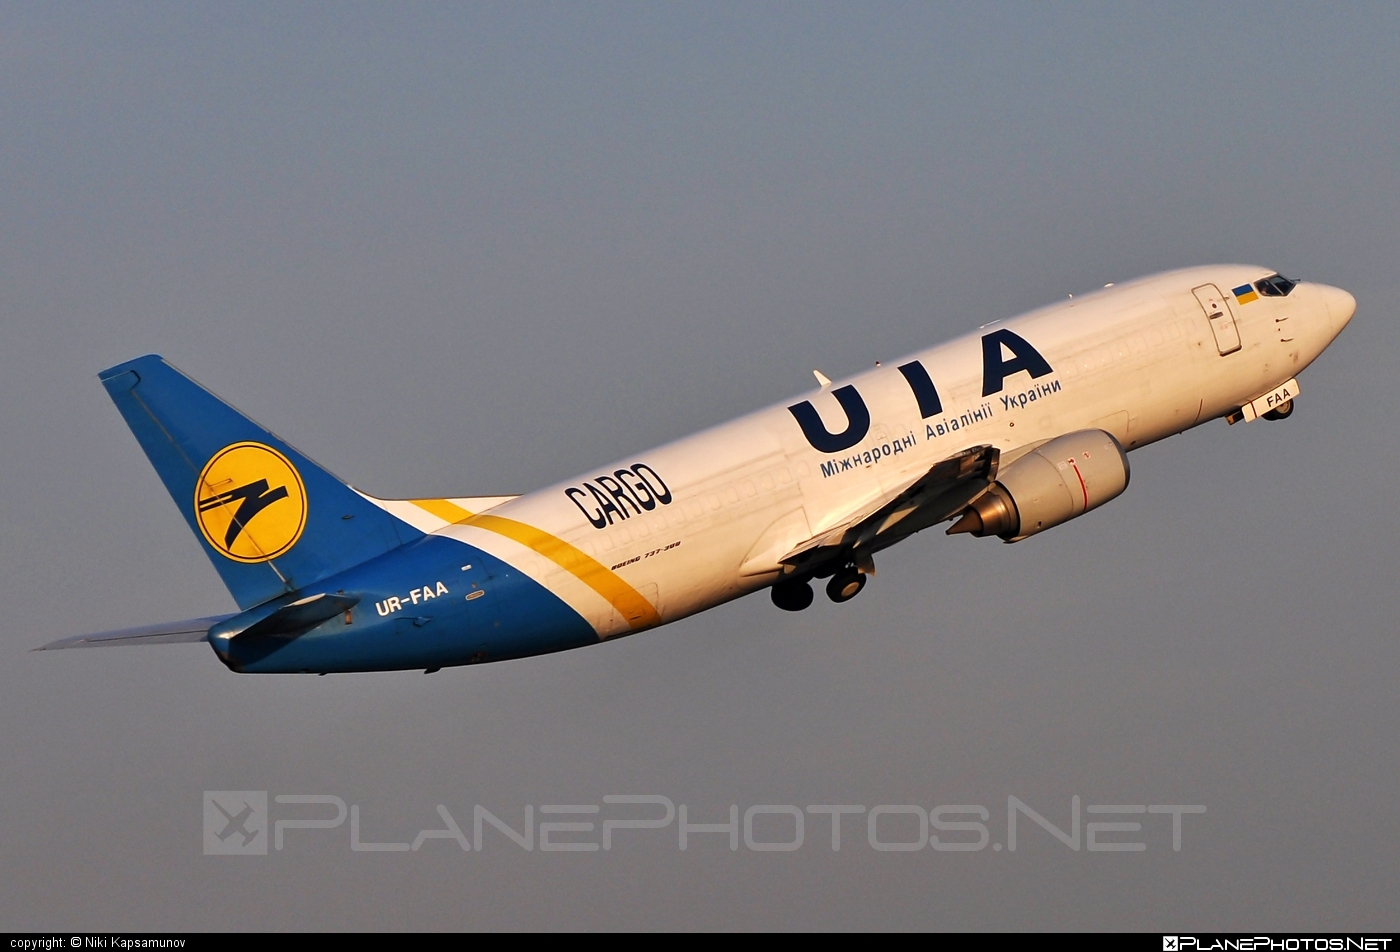 Boeing 737-300F - UR-FAA operated by Ukraine International Airlines Cargo #b737 #b737f #b737freighter #boeing #boeing737